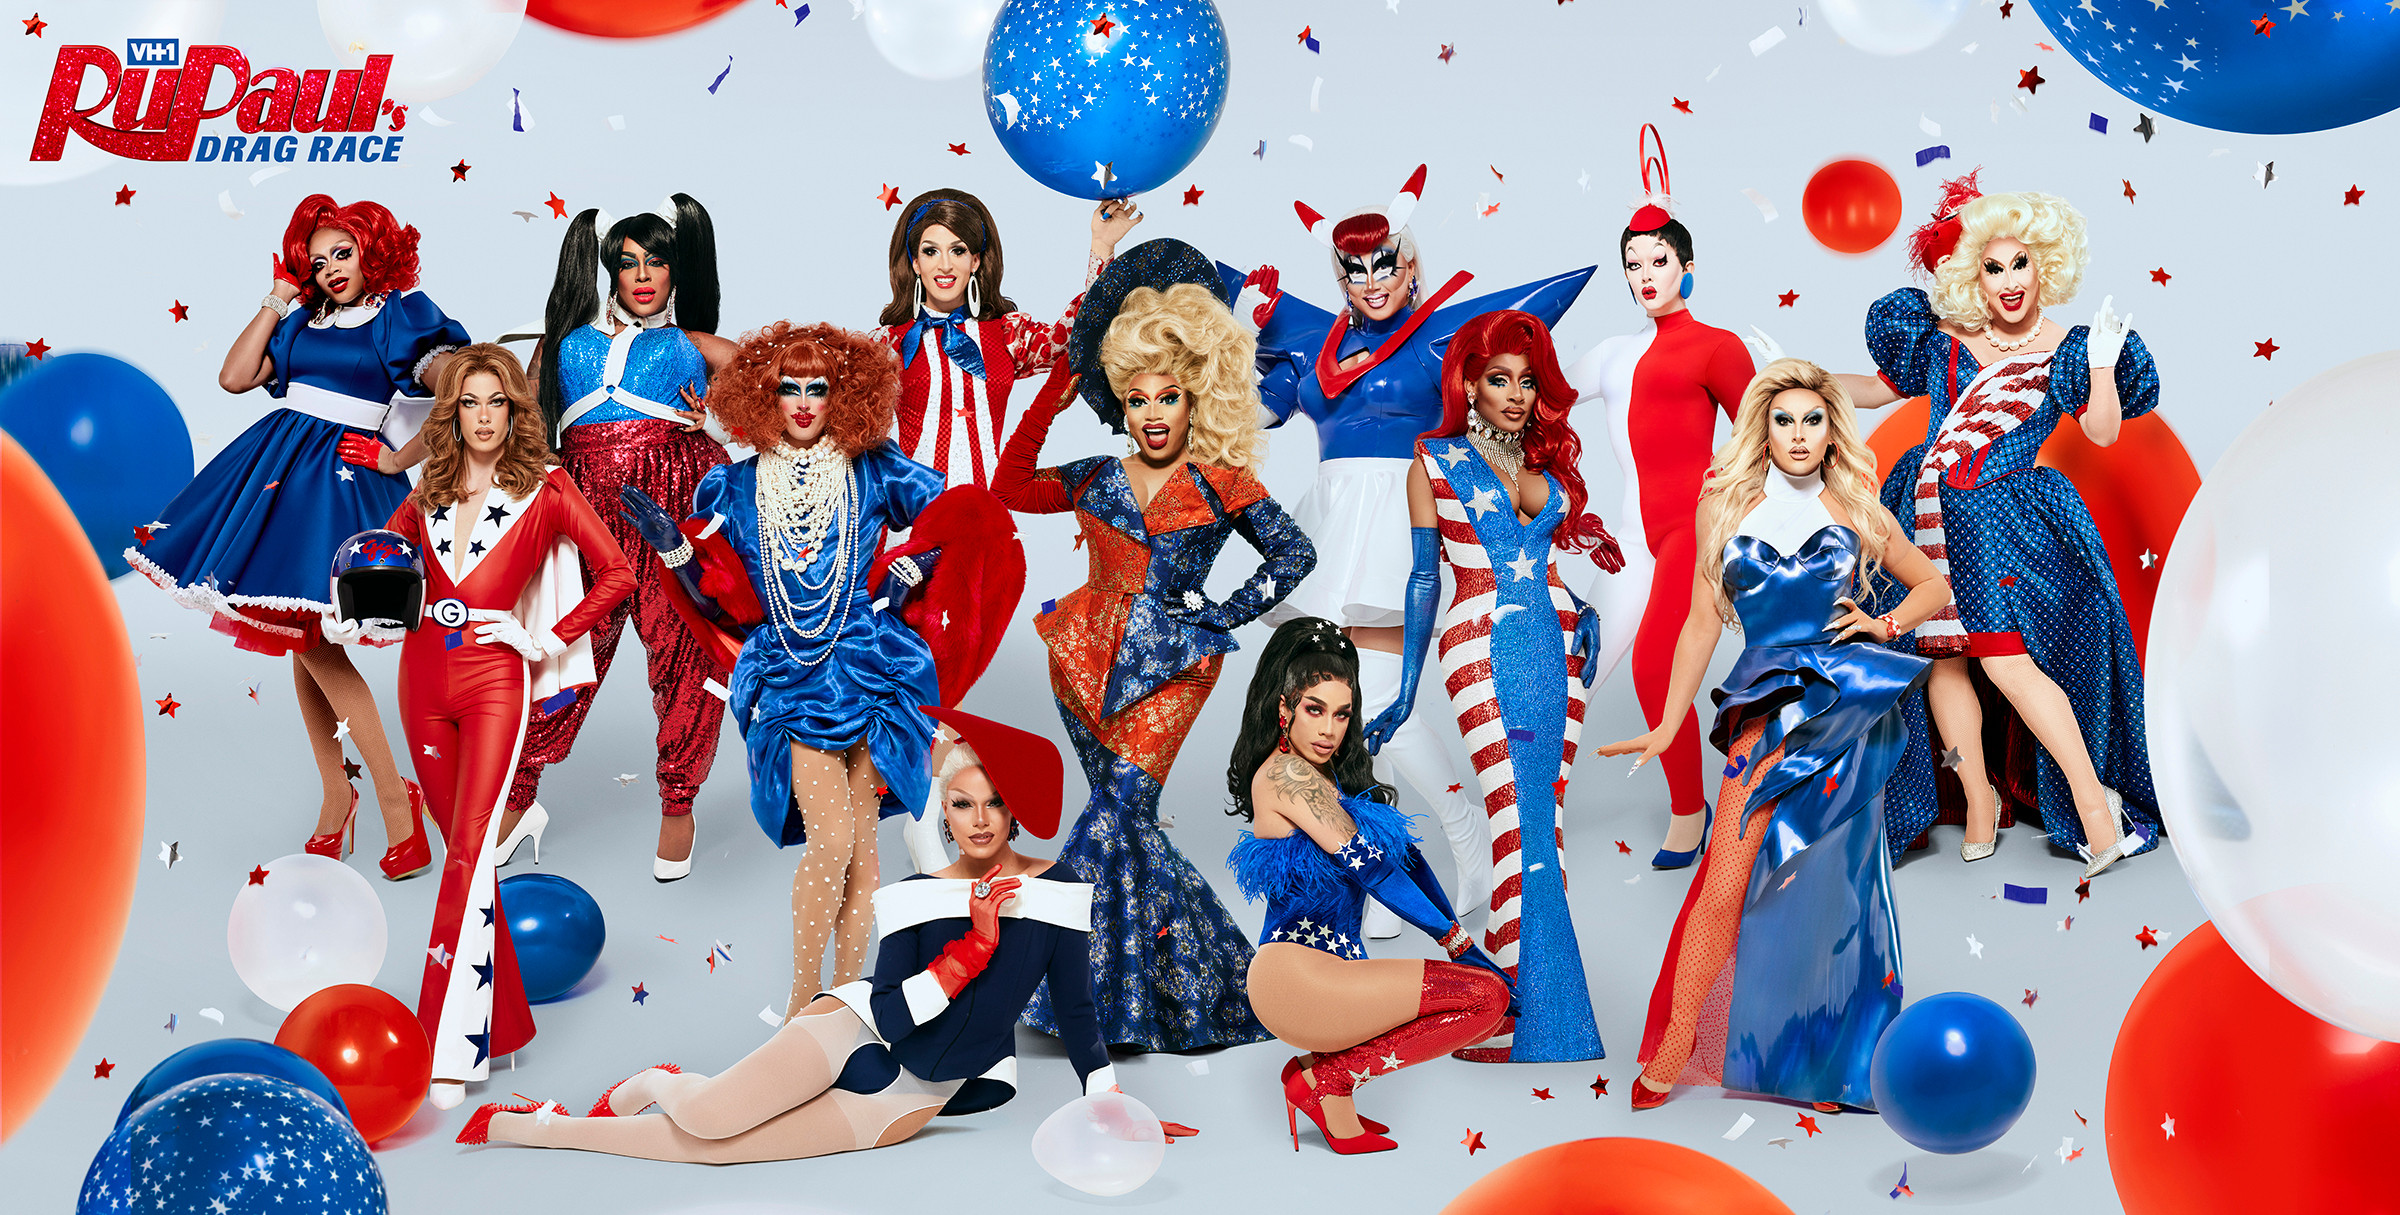 RuPaul's Drag Race Season 12 Finale Episode will be released on 29th May 2020